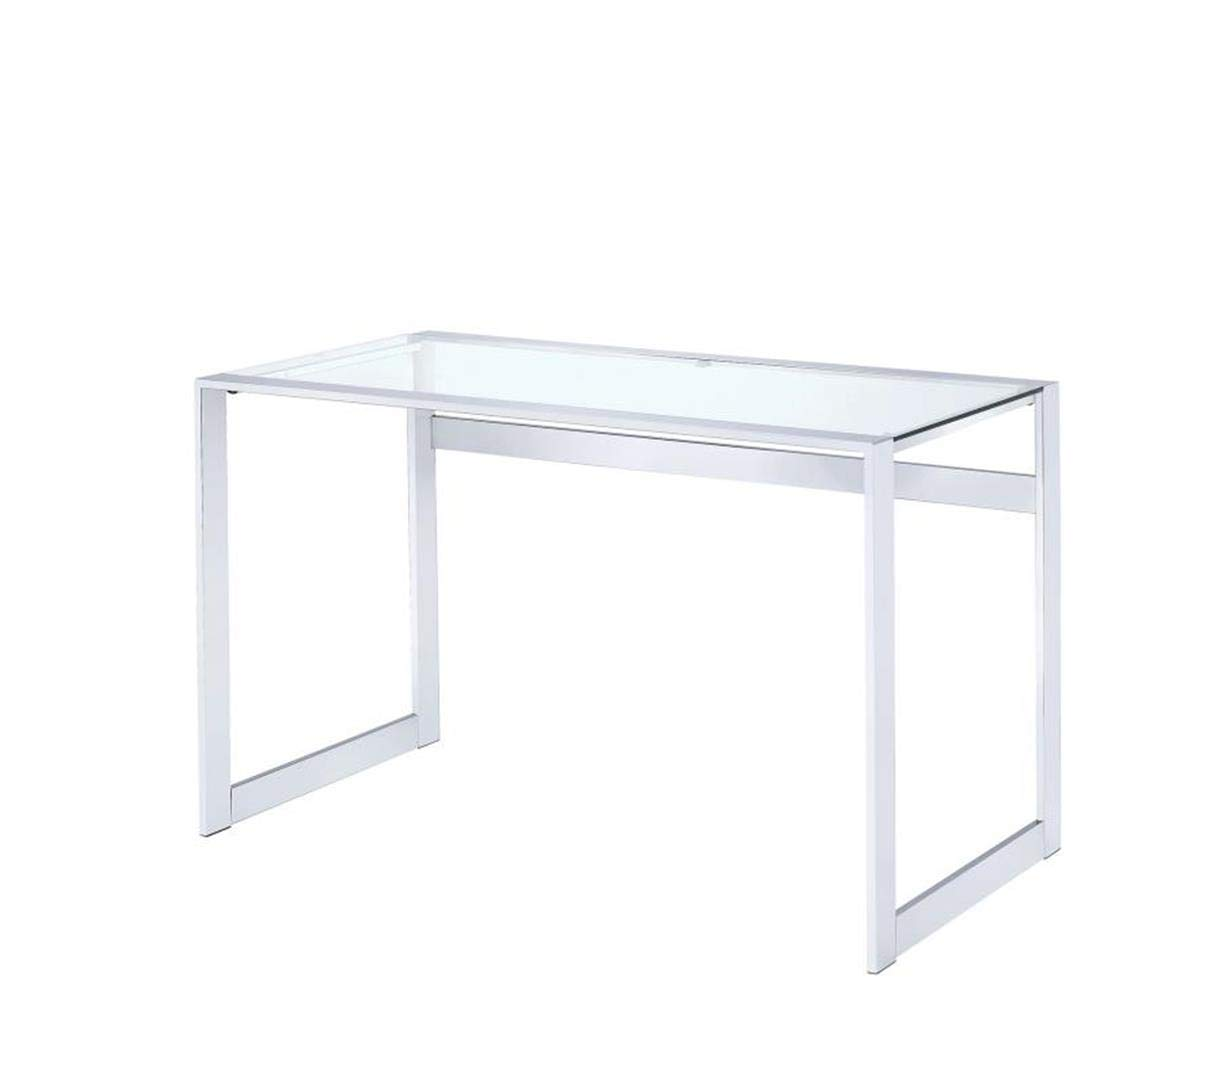 Small apartment desk with flat top